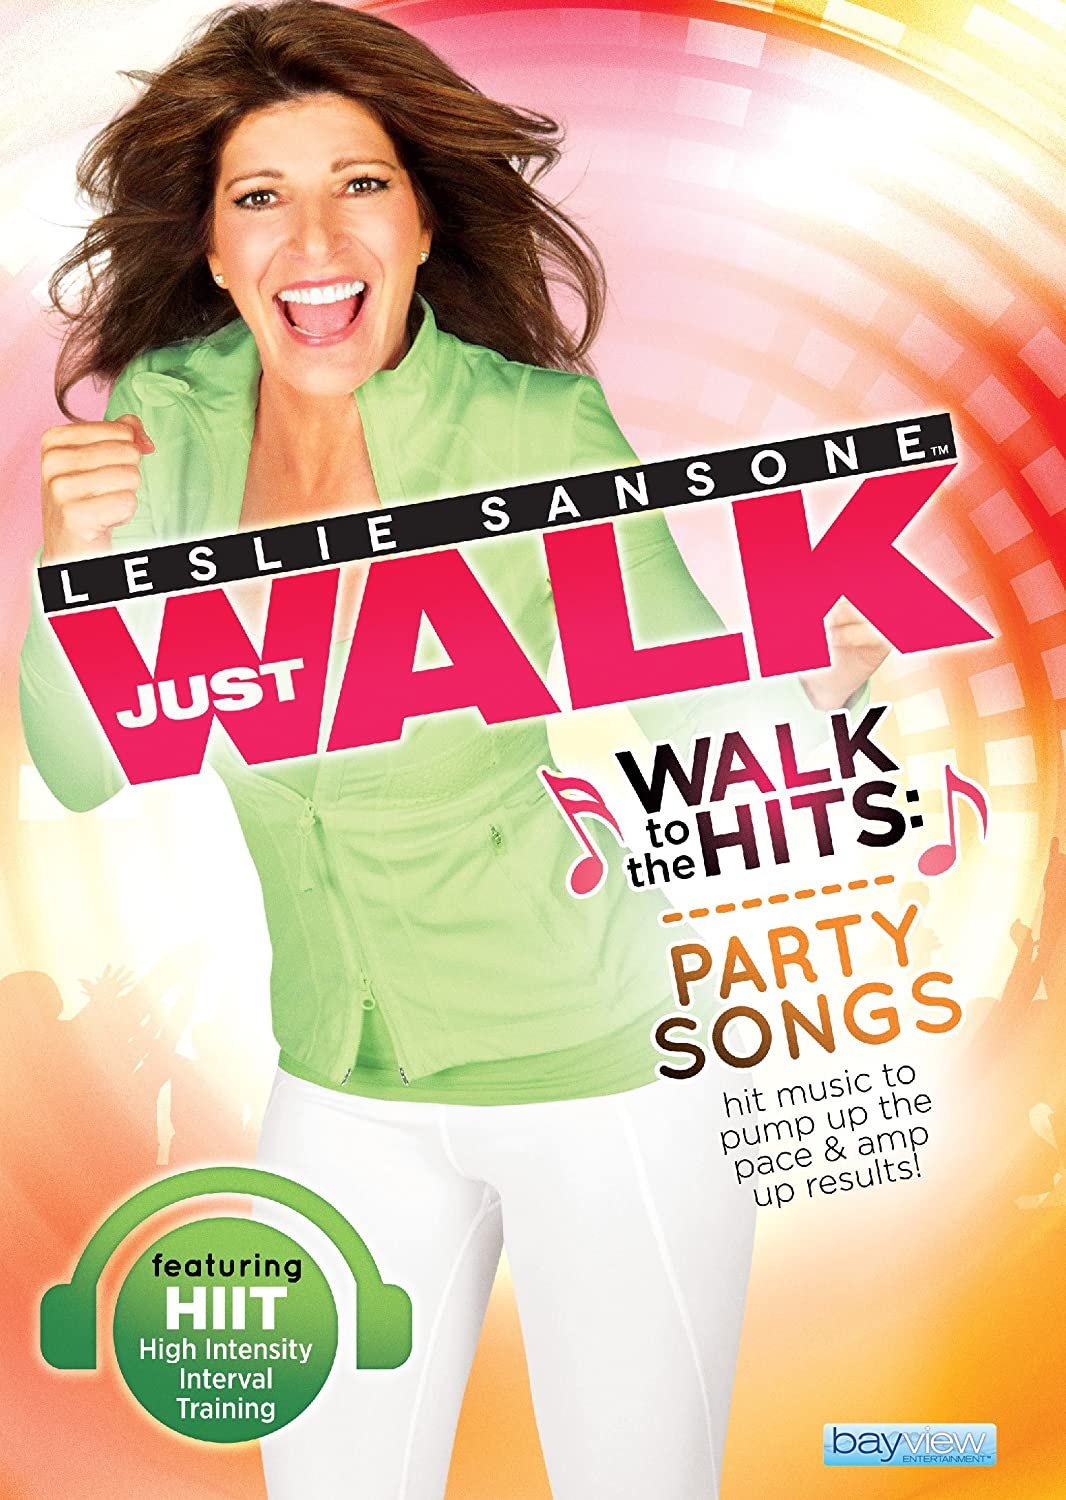 Nashville-Davidson Mall Leslie Sansone: Walk Super special price to Songs the Party Hits